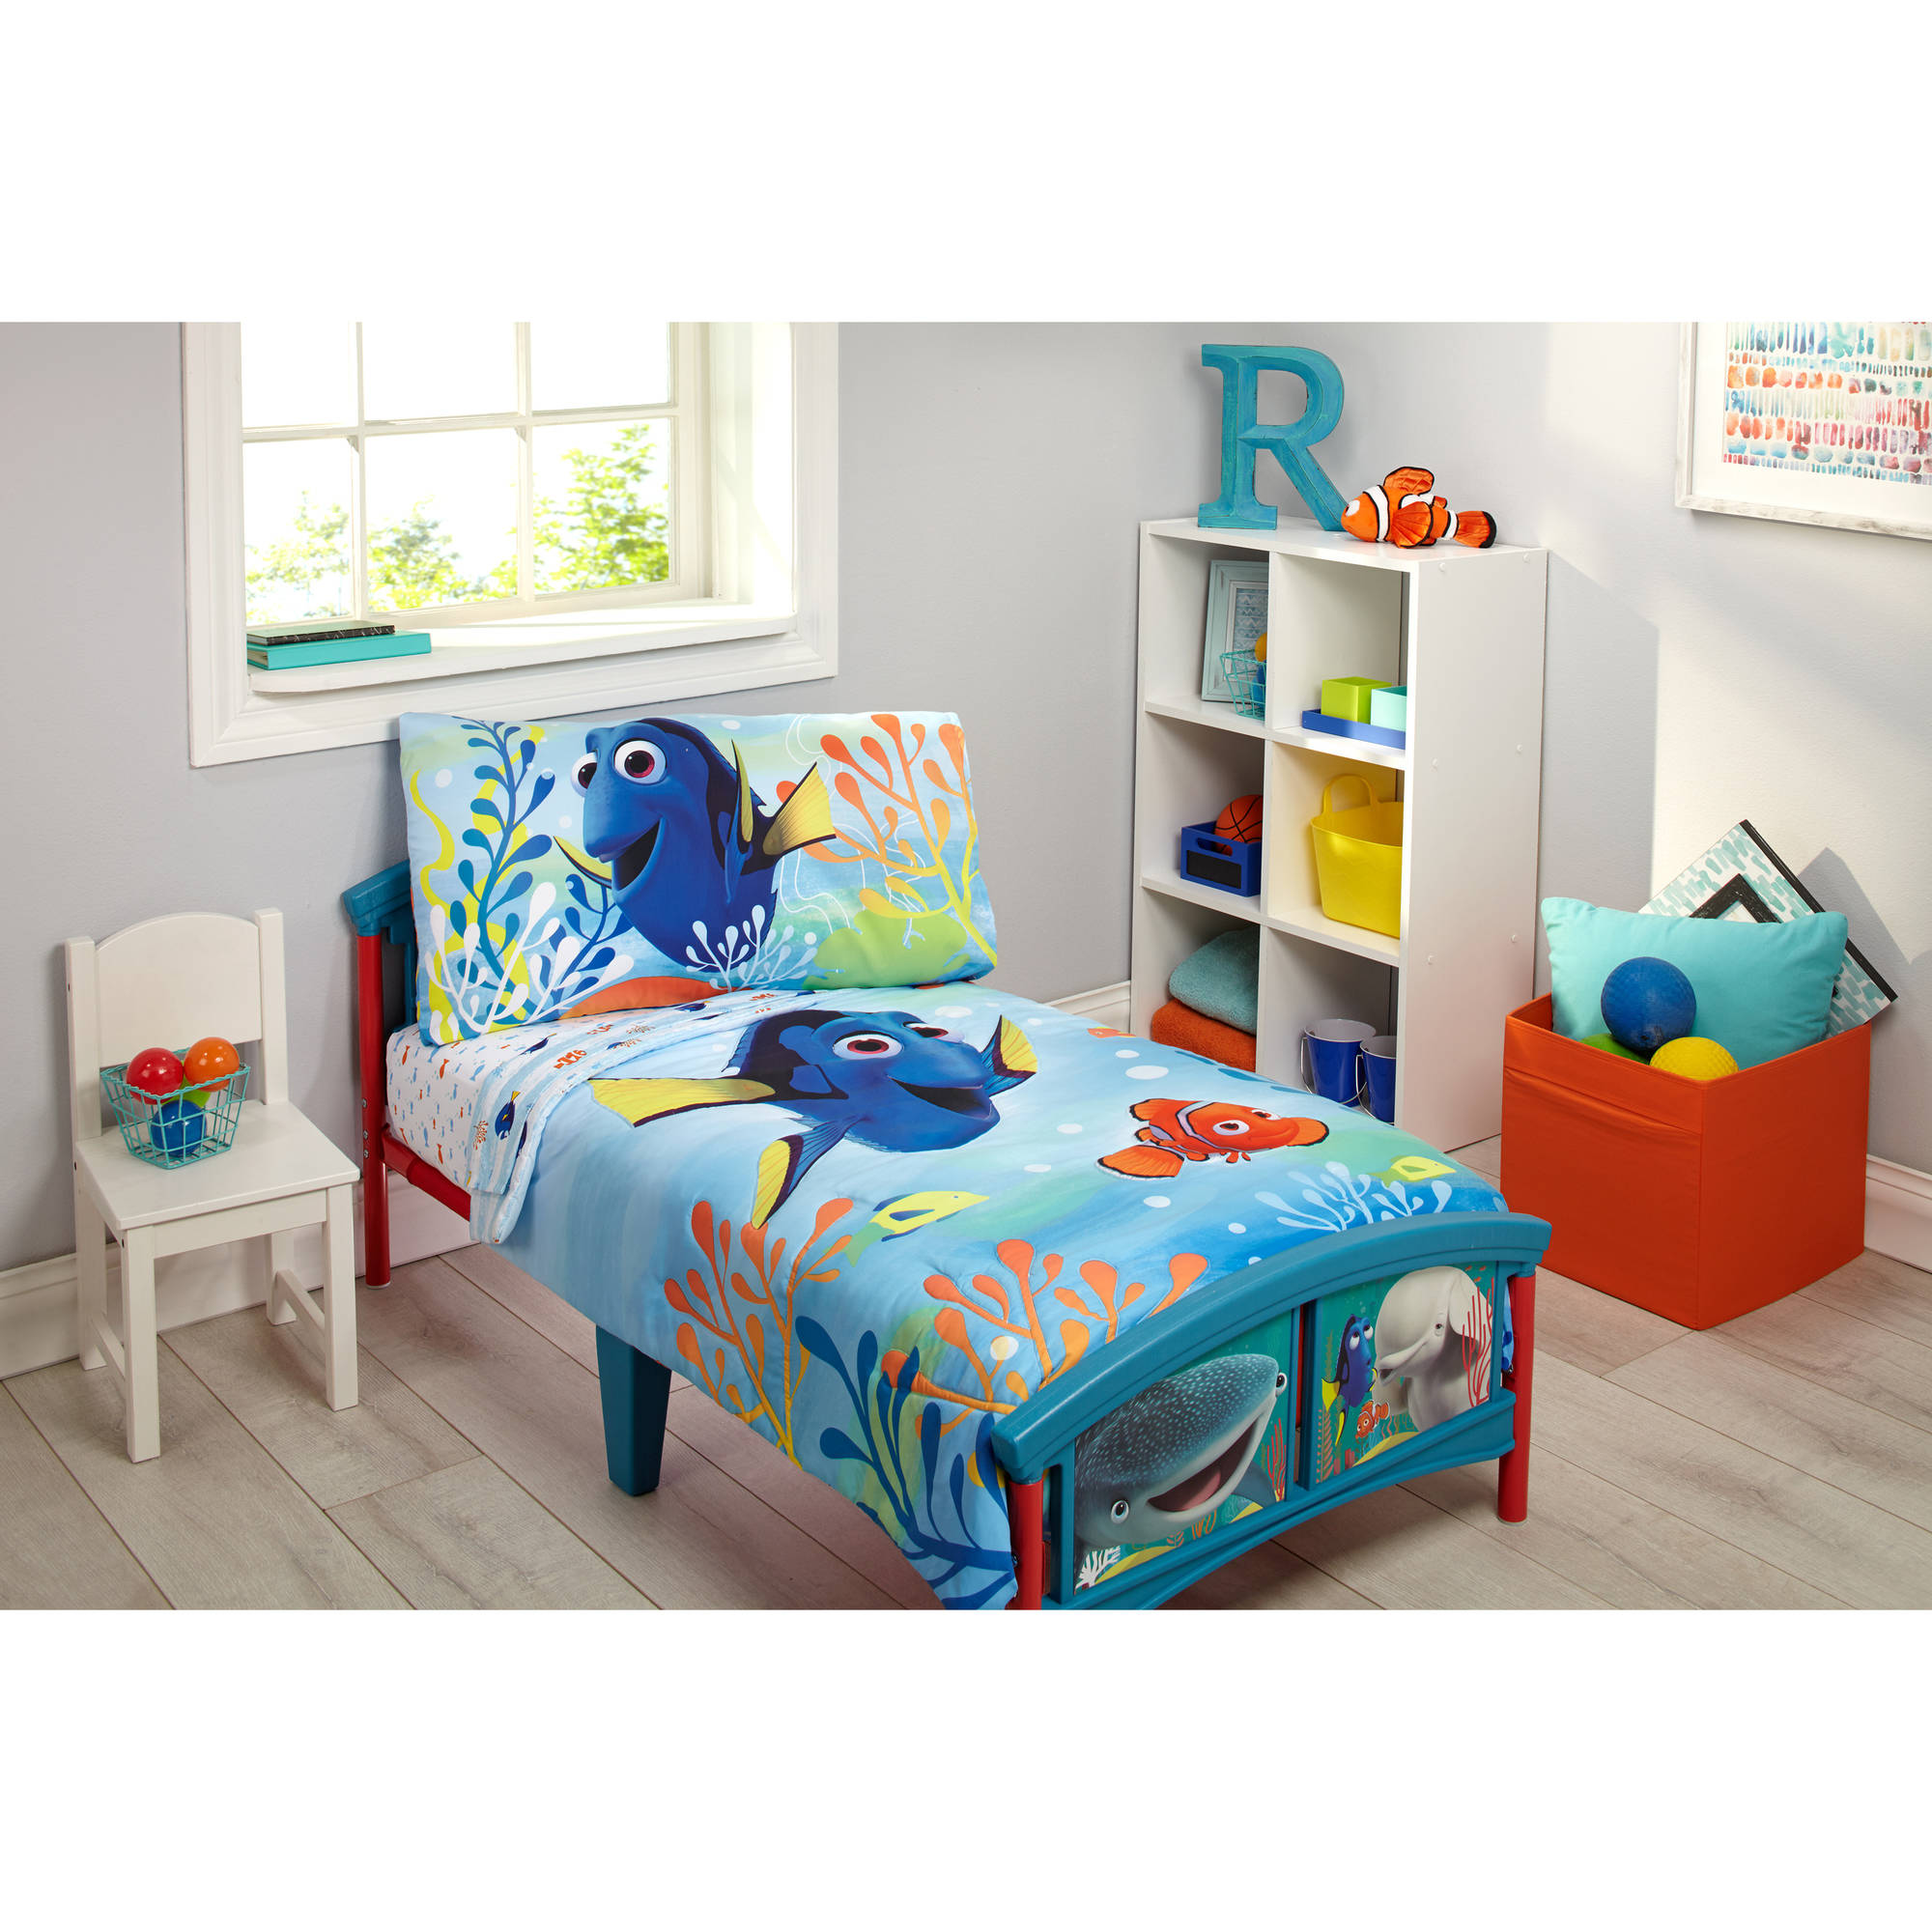 Disney Finding Dory 4 Piece Toddler Bedding Set